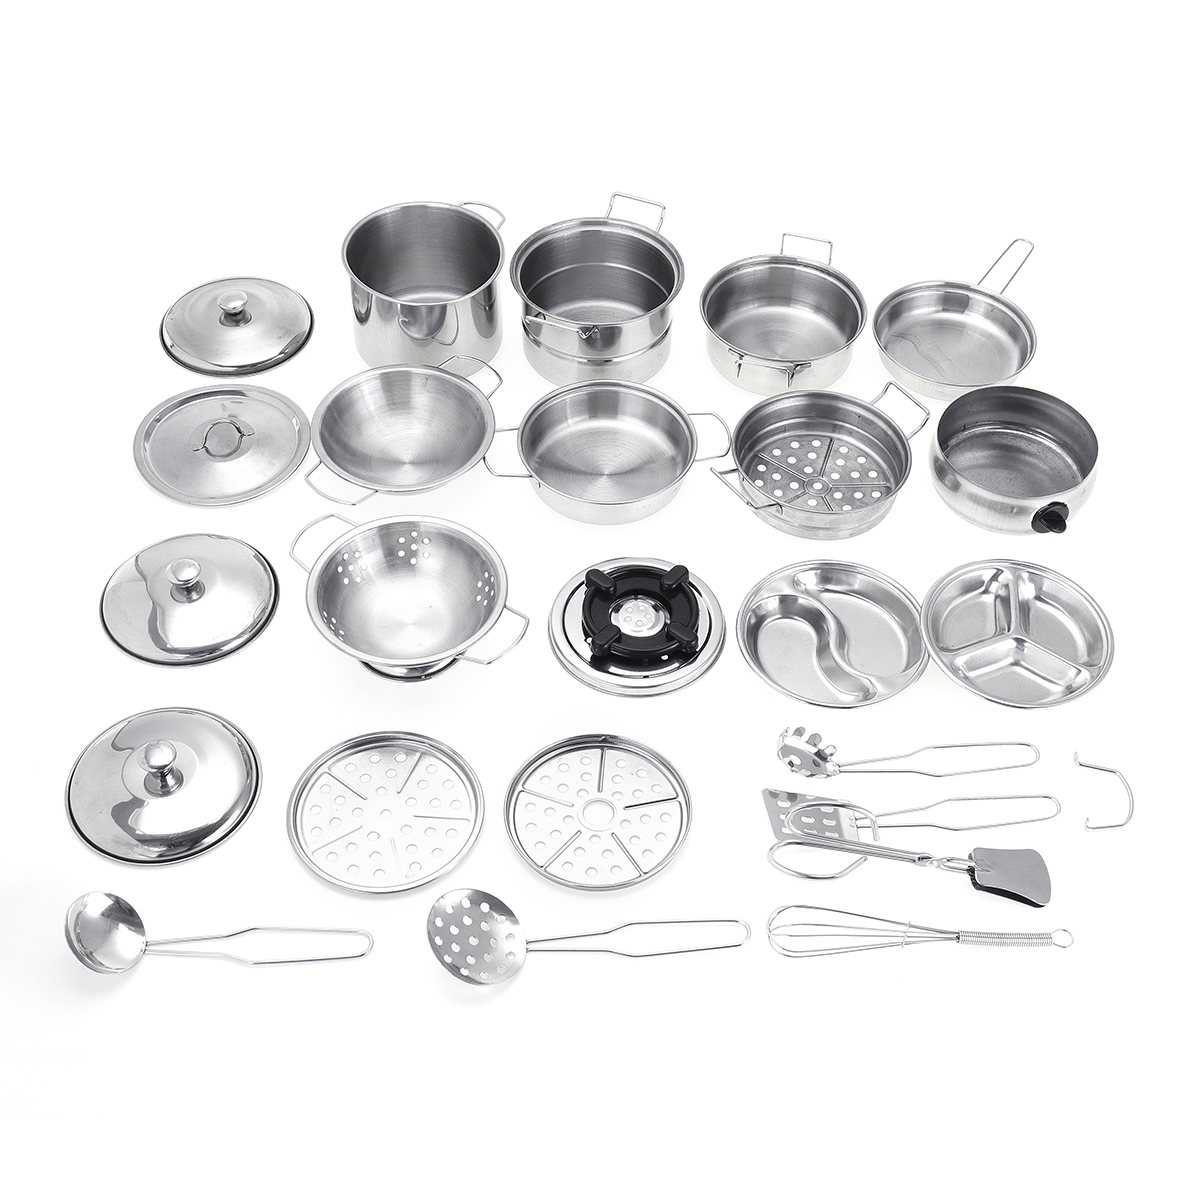 32PCS Mini Stainless Steel Kitchen Cutlery Play House Food Toy Boiler Kettle Cup Bowl Spoon Cookware